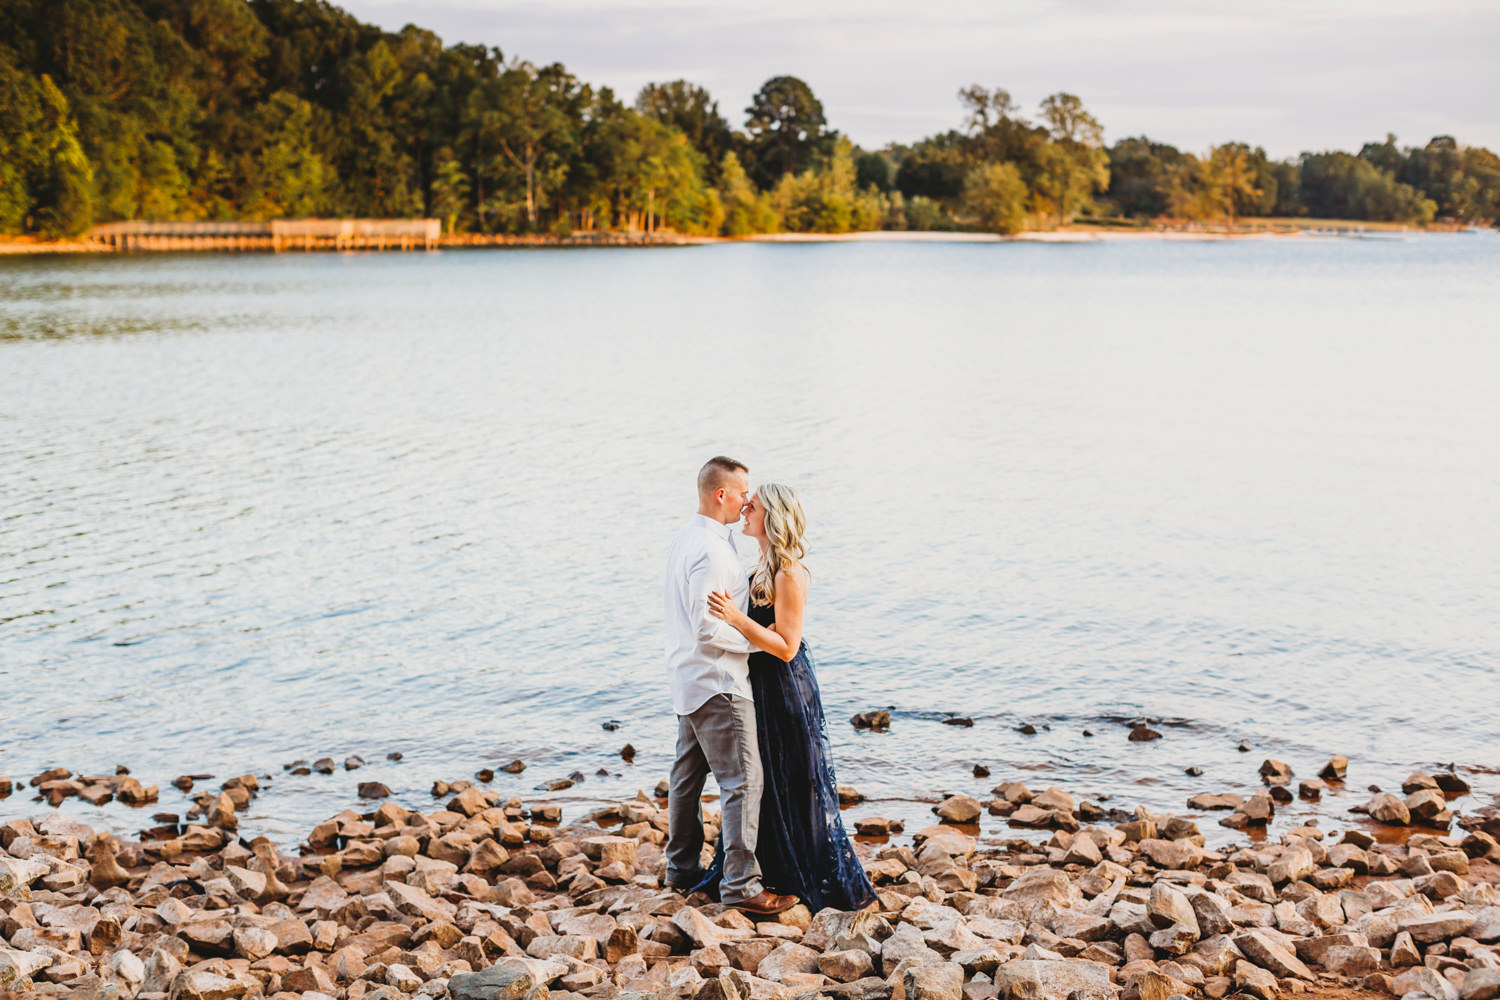 North Carolina Engagement Photographer, North Carolina Elopement Photographer, North Carolina engagement Picture ideas, Charlotte NC engagement Photographer, engagement picture locations in North Carolina, engagement photography inspiration, Charlotte North Carolina engagement pictures, lake engagement pictures, Jetton Park engagement, Jetton Park engagement pictures, North Carolina lake engagement, Lake Norman engagement pictures, Lake Normal engagement, engagement photo posing